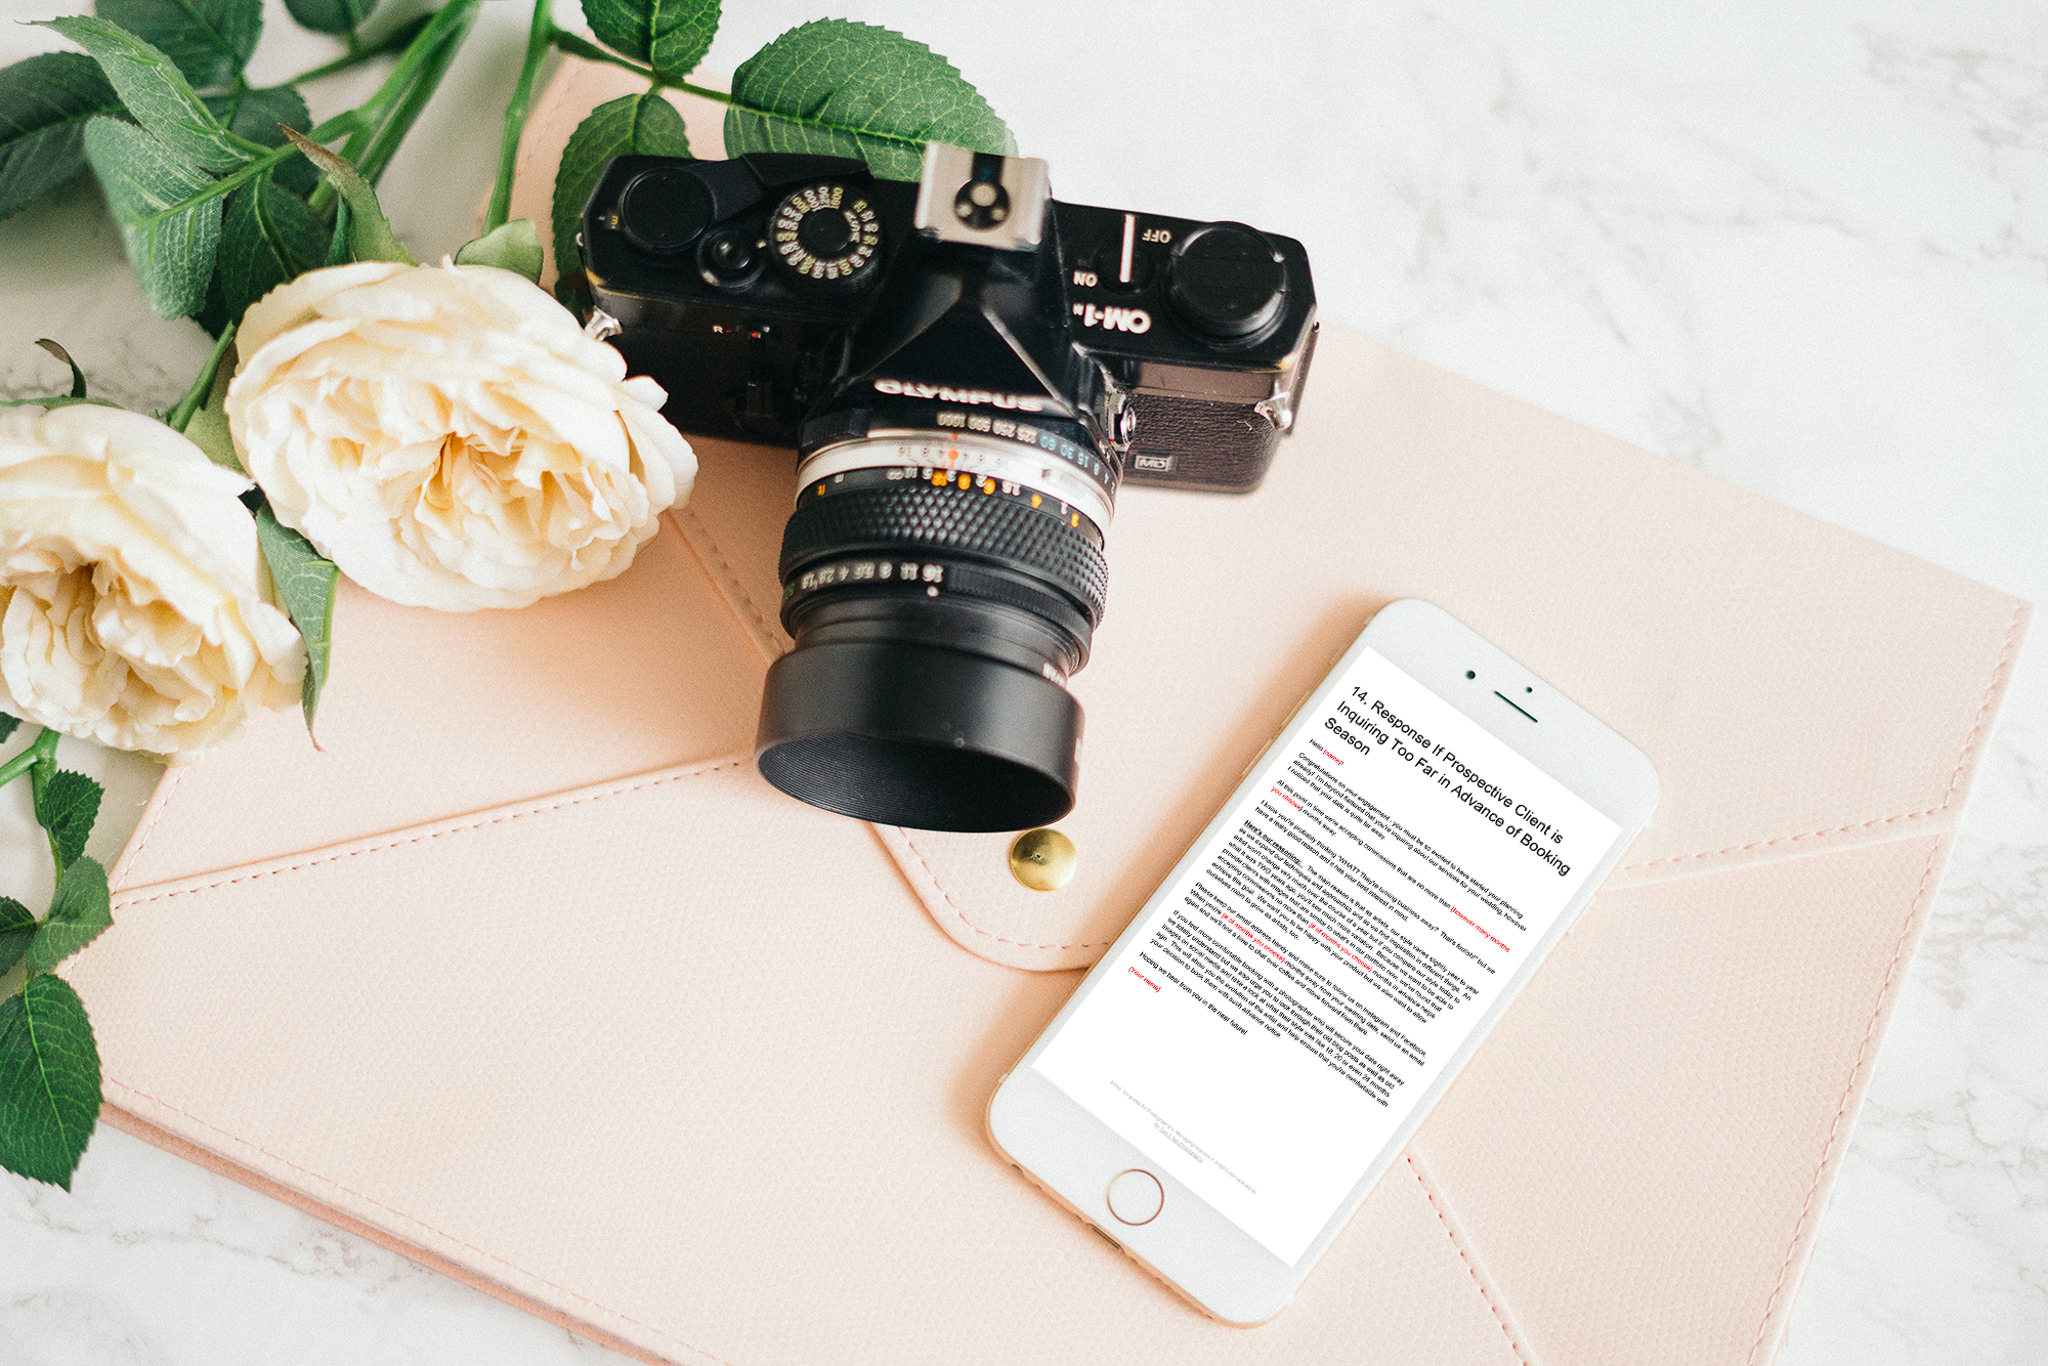 email templates for photographers 5 - Email Templates for Photographers - Managing Inquiries + Initial Contacts